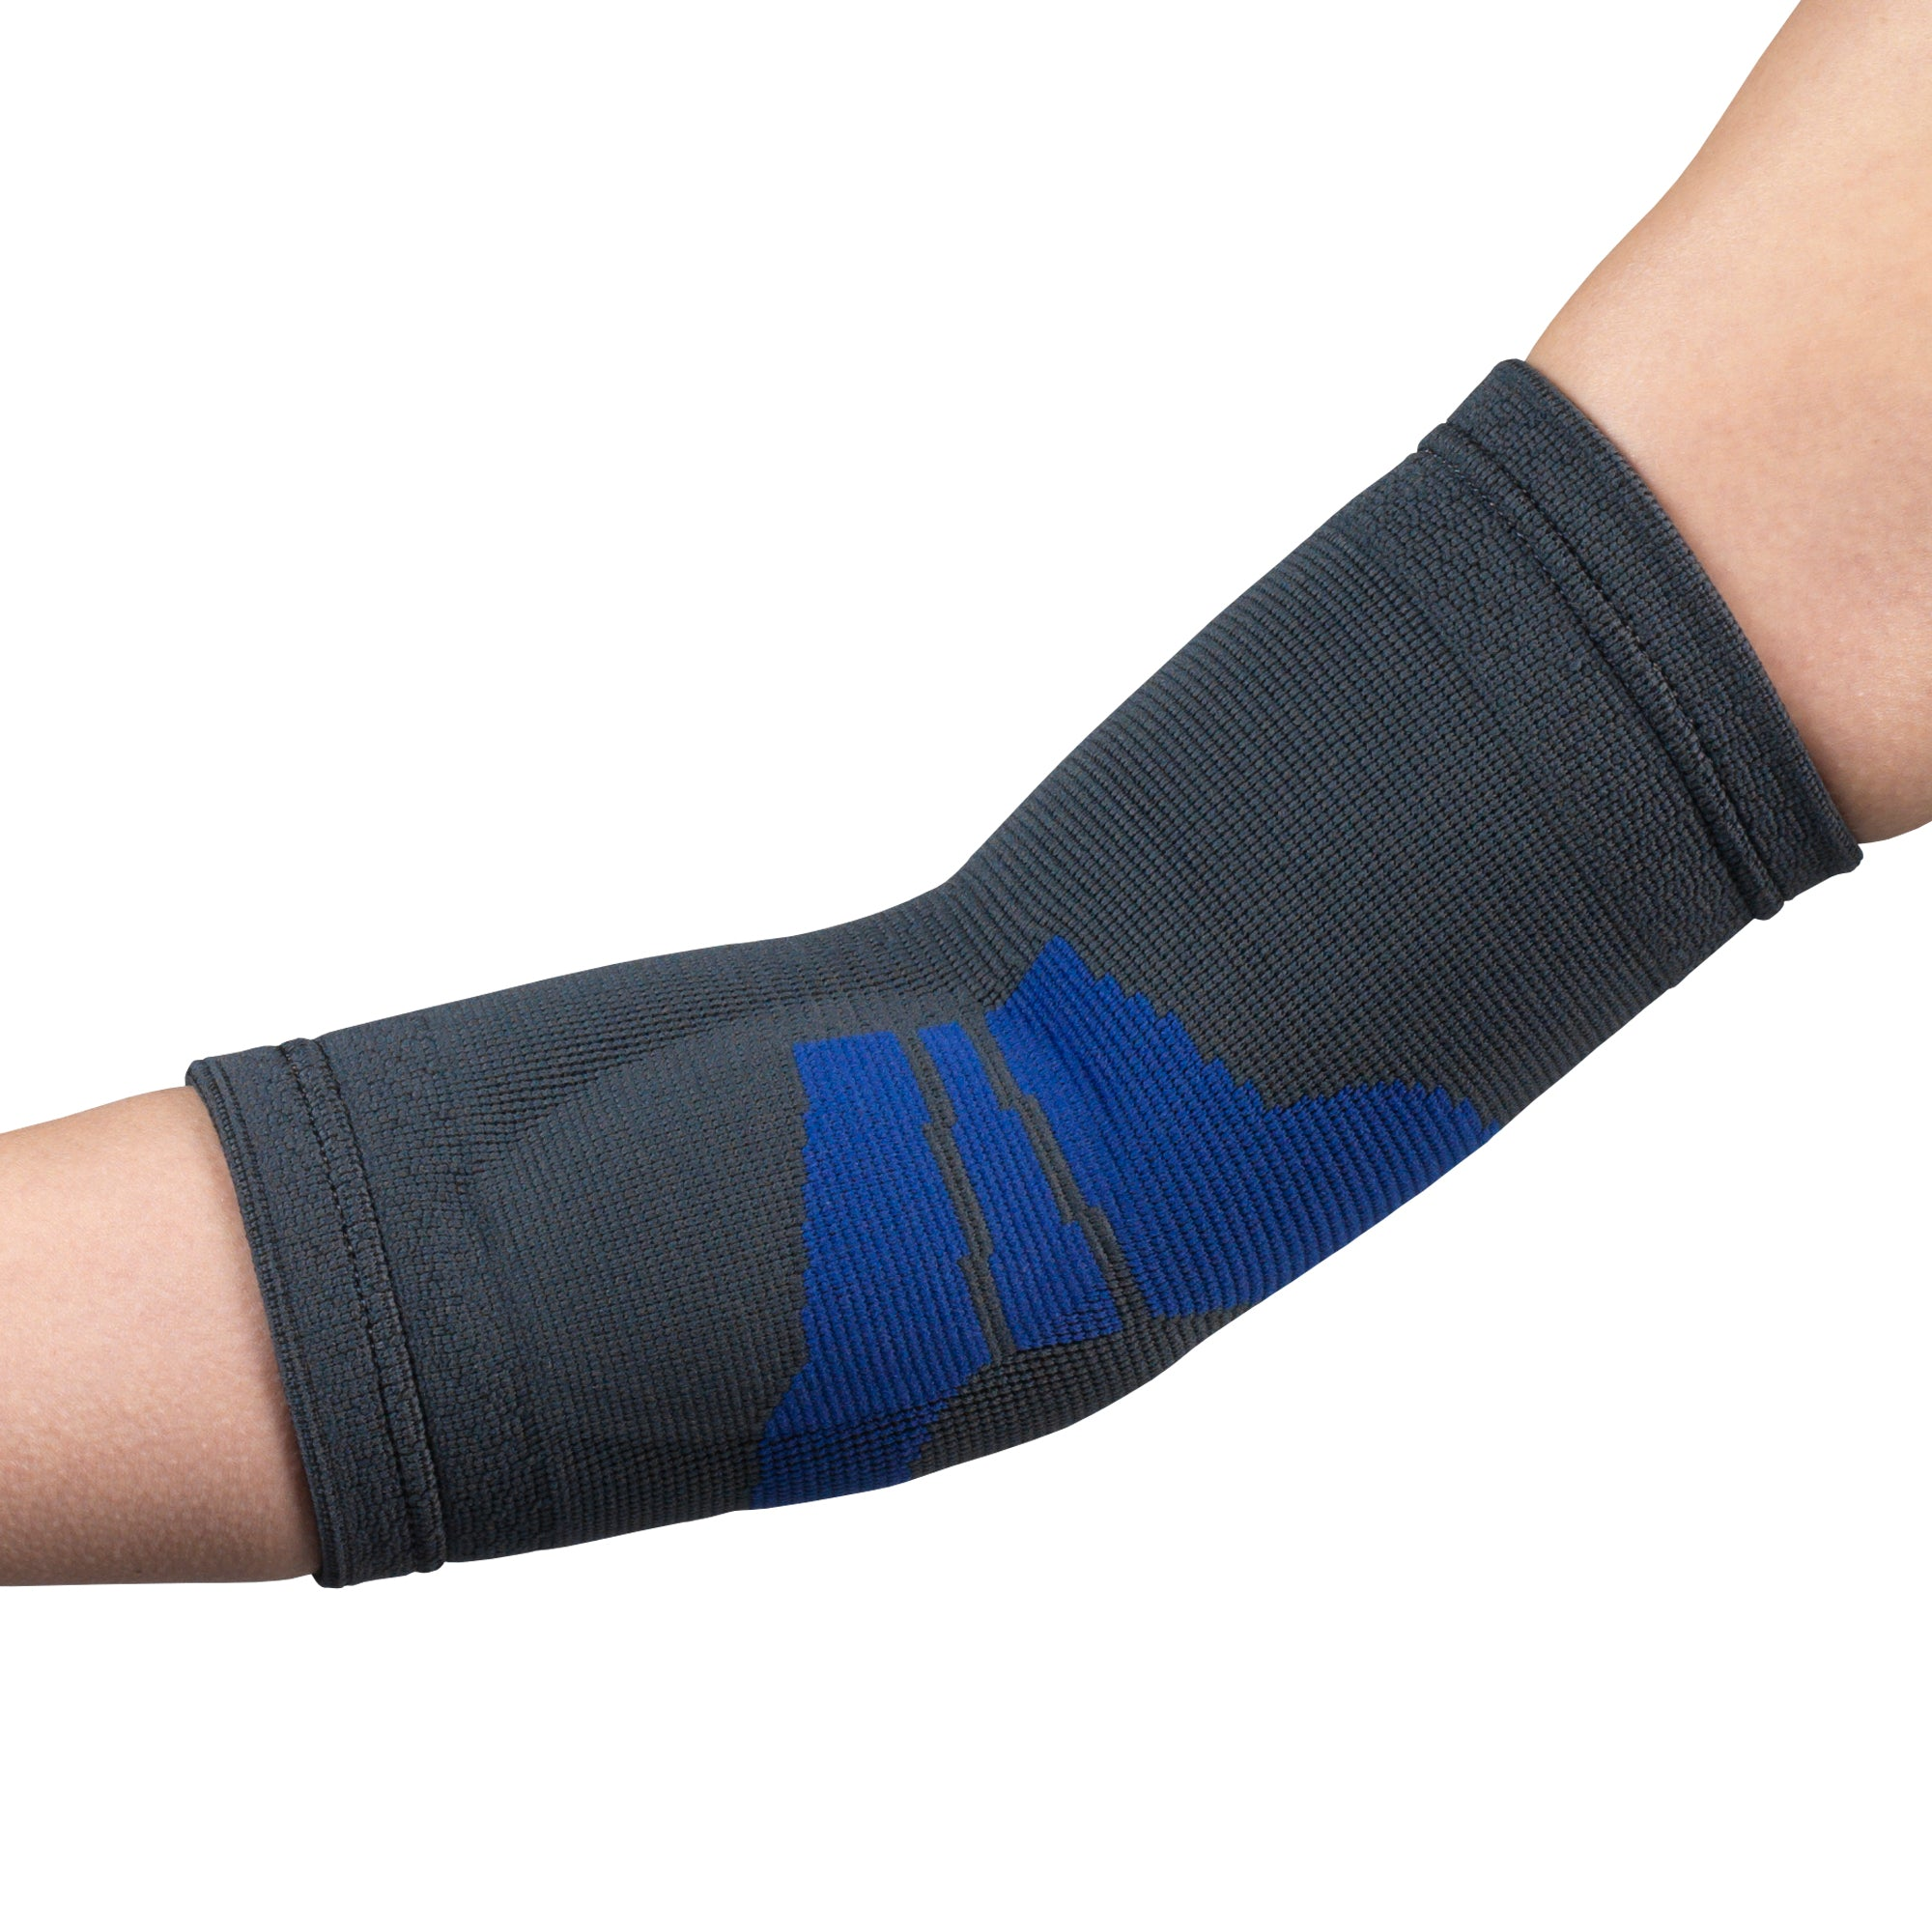 --Side of ELBOW SUPPORT WITH COMPRESSION GEL INSERT--